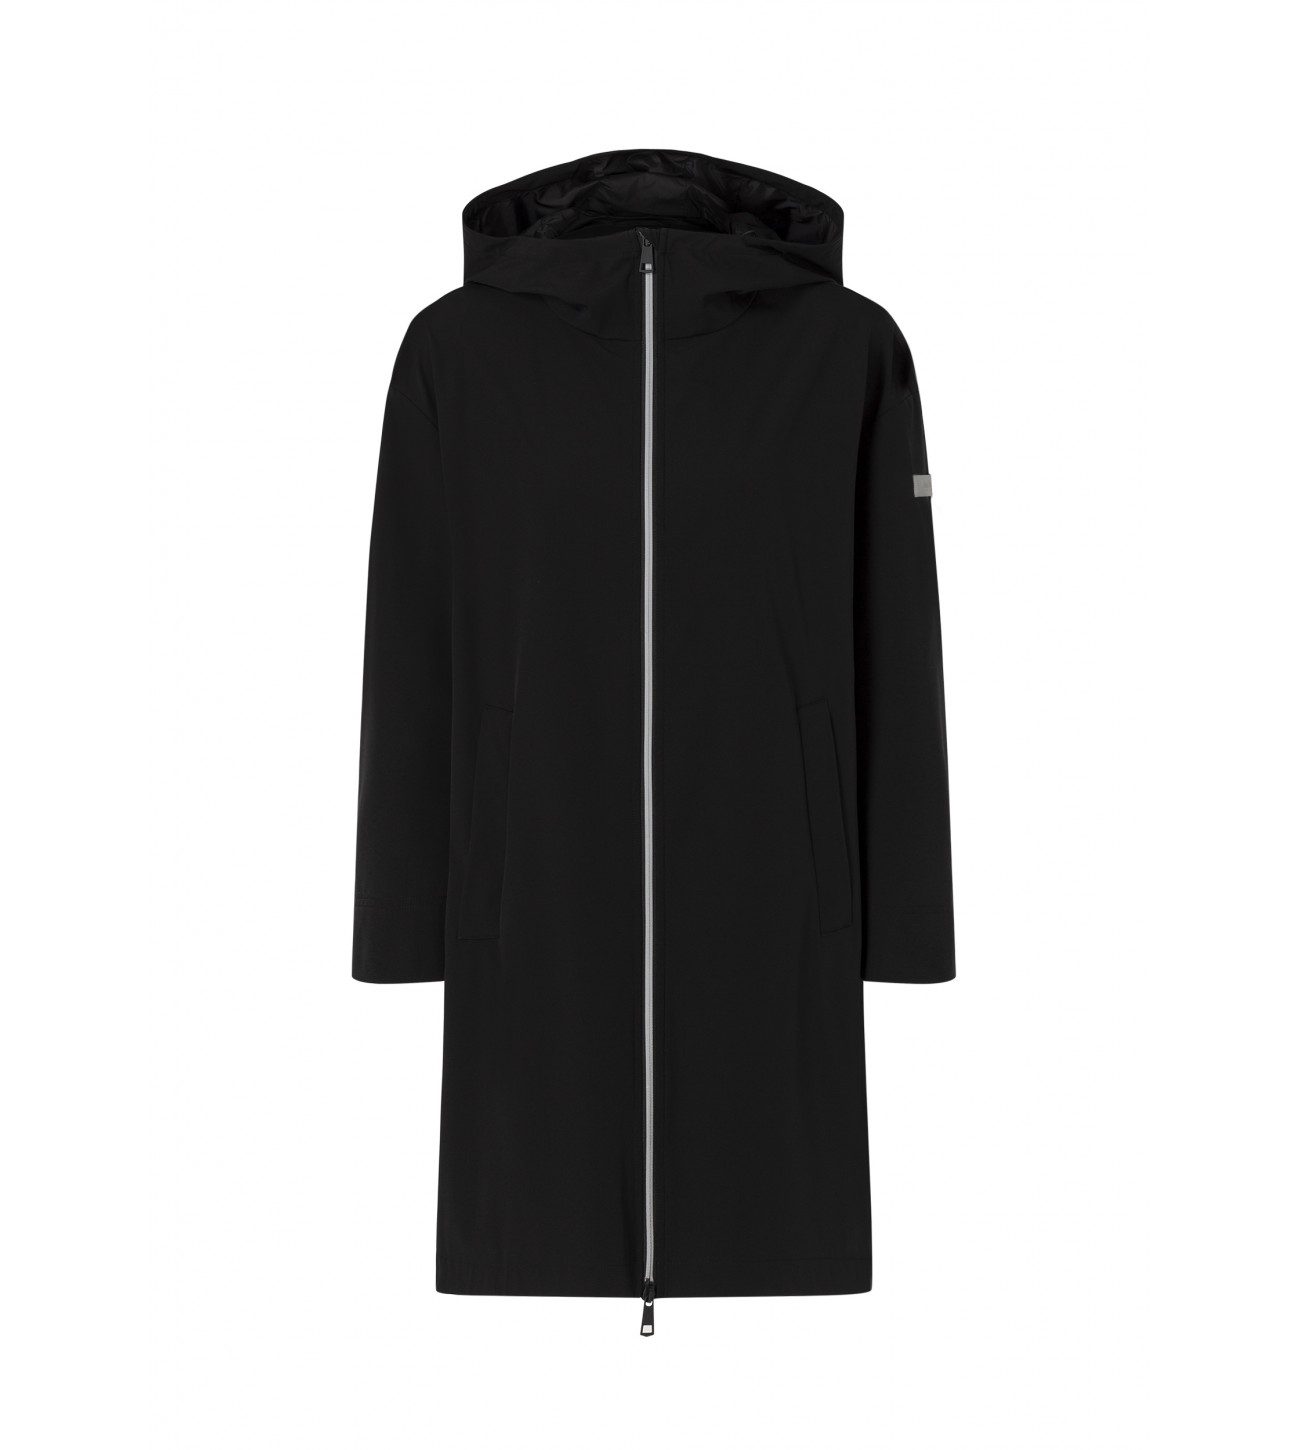 MAX_MARA_LEISURE_TECHNICAL_PARKA_WITH_REFLECTIVE_BANDS_MARIONA_FASHION_CLOTHING_WOMAN_SHOP_ONLINE_30260116000